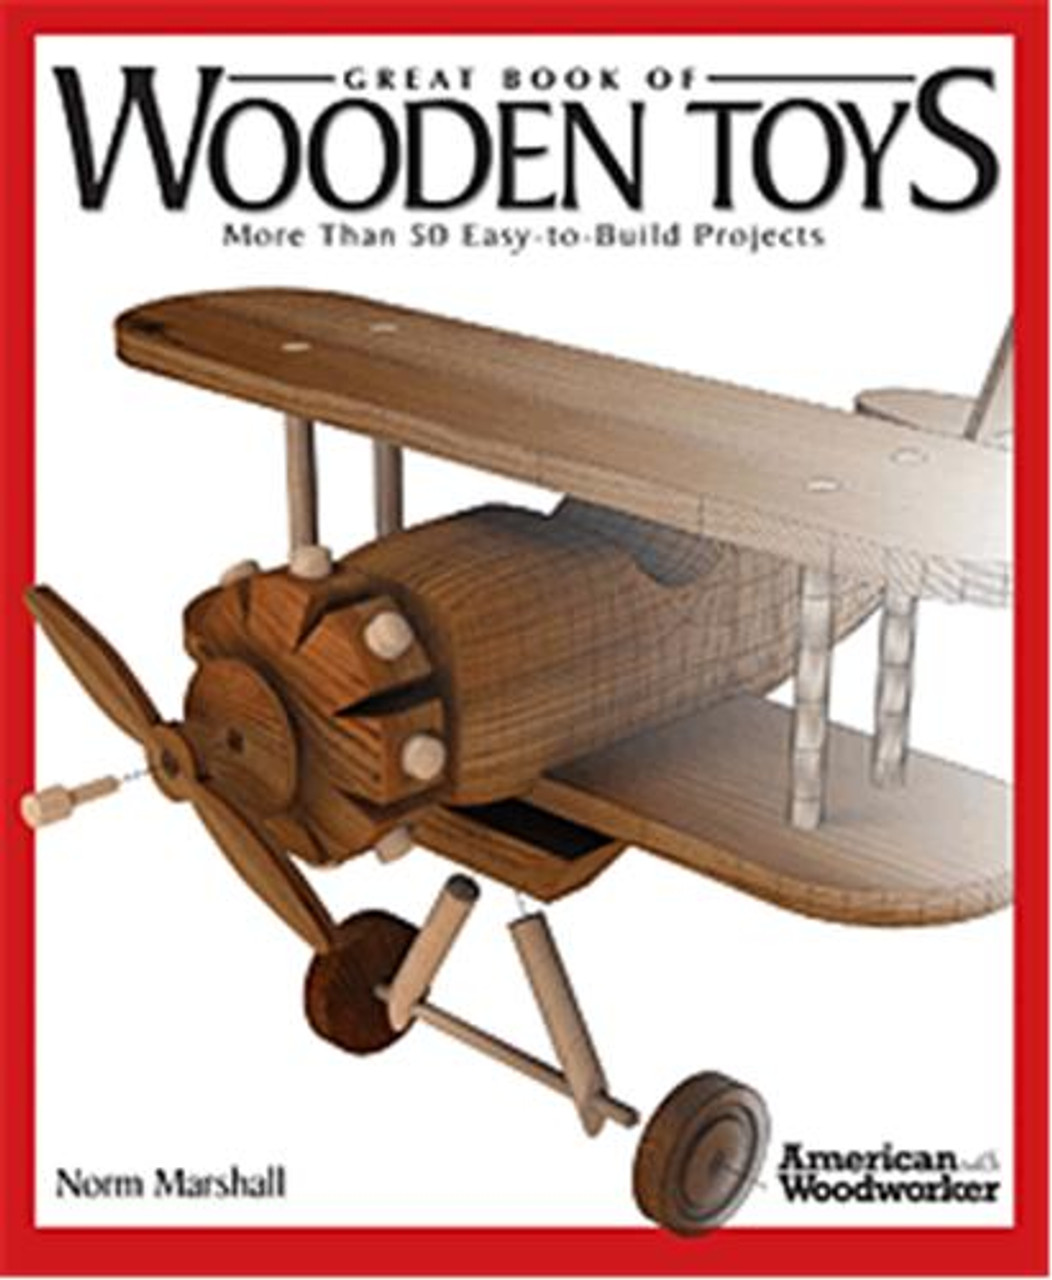 Fox Chapel Publishing Great Book of Wooden Toys